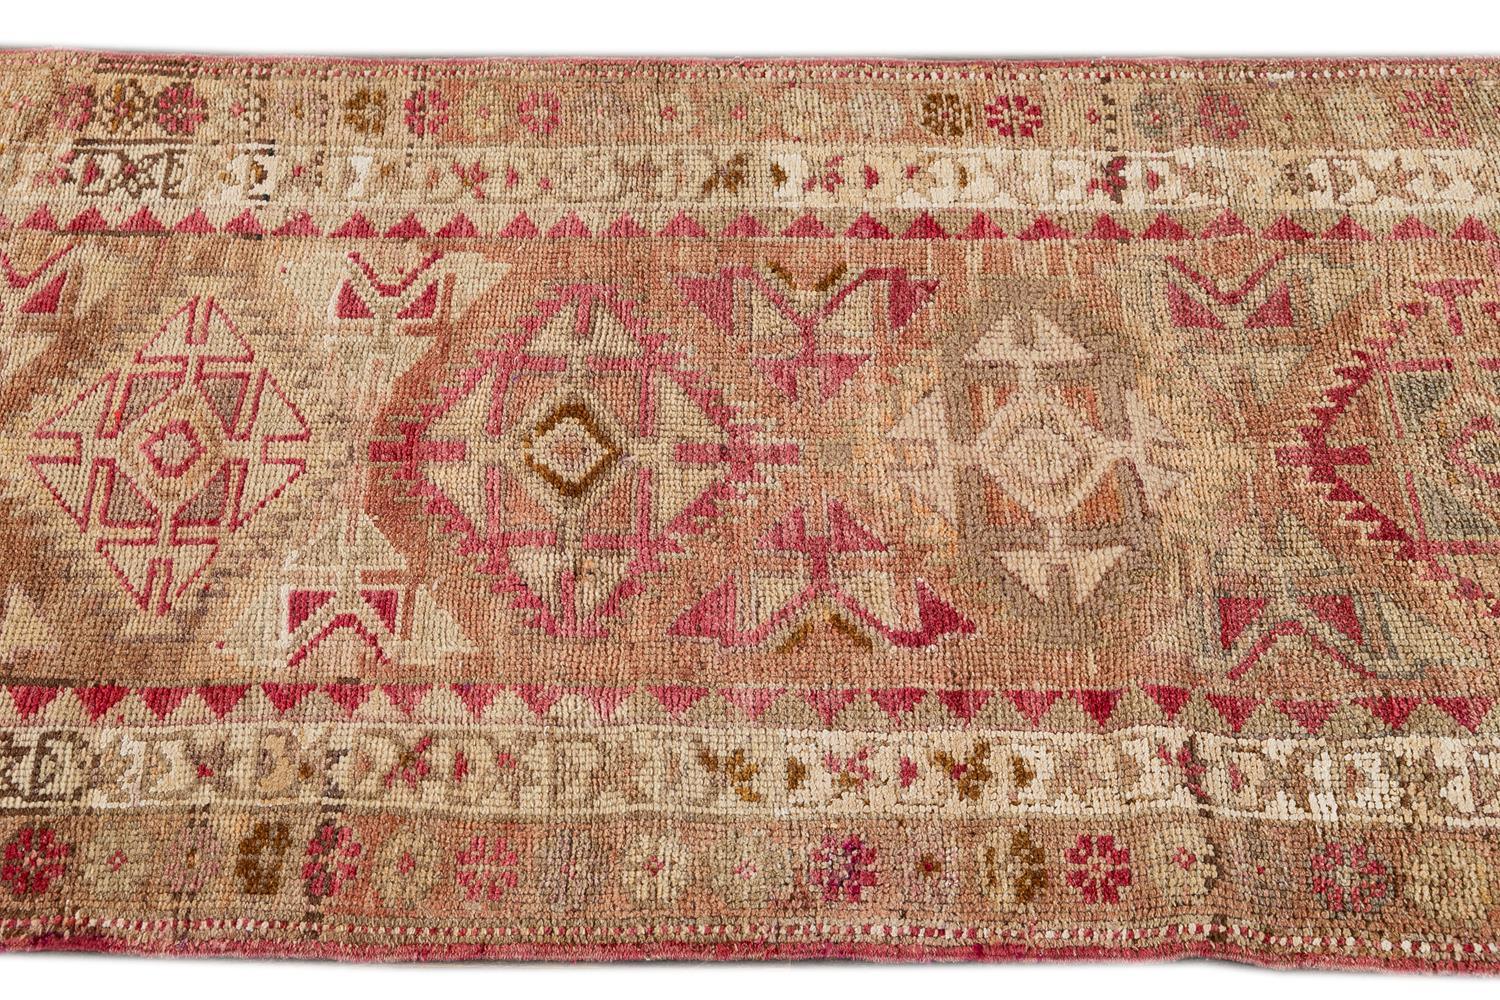 Beautiful Turkish Runner Rug, 3' x 11'